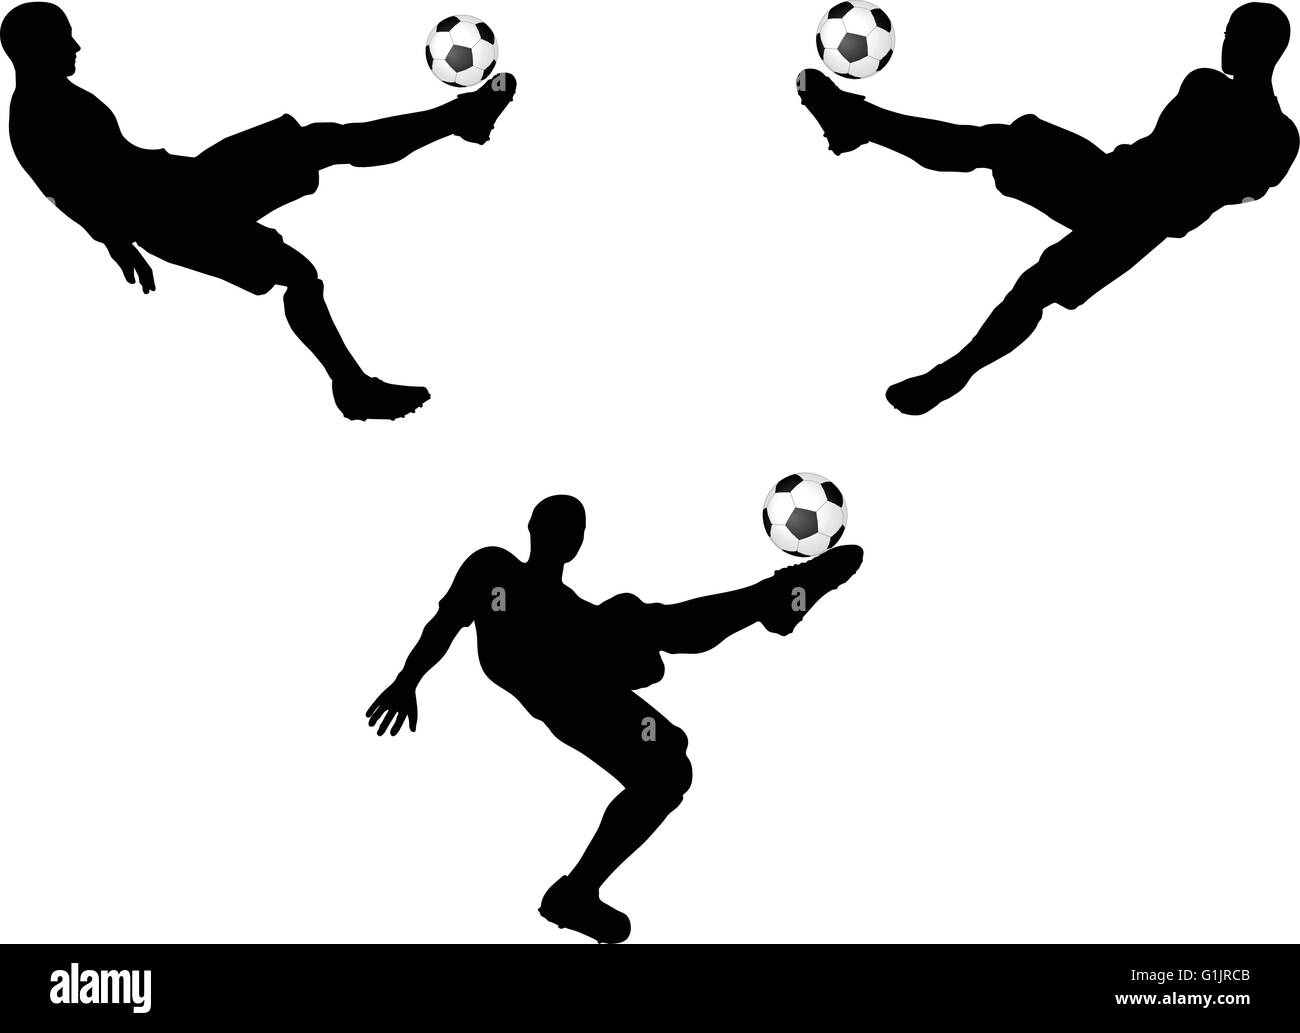 isolated poses of soccer players silhouettes in air position - Stock Image